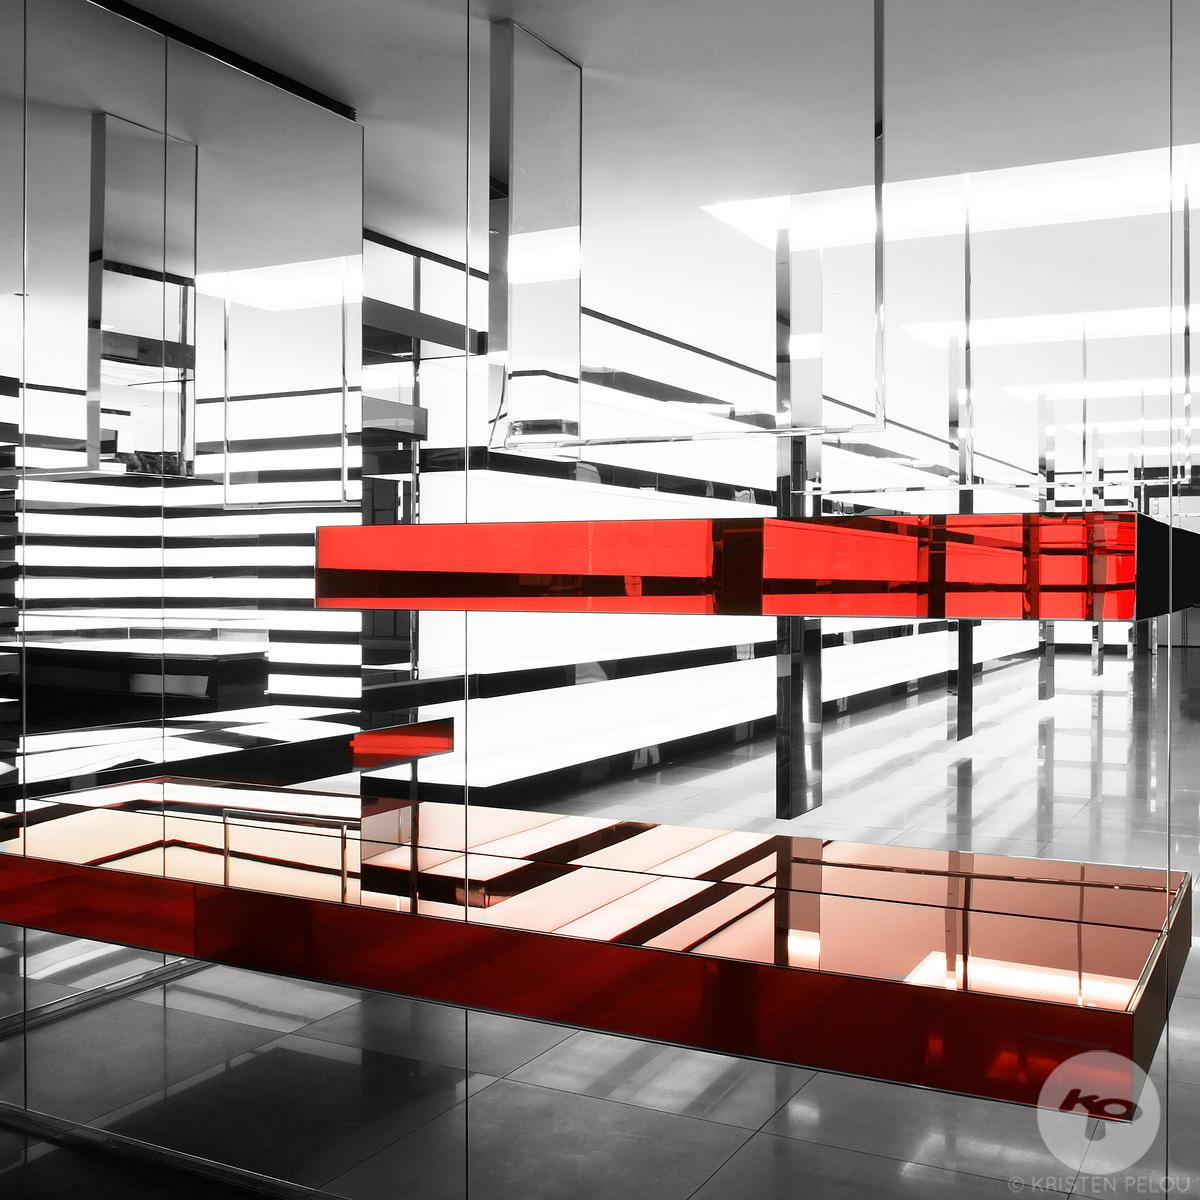 Architecture photographer Paris - Dior Homme store, Peking Road, Kowloon Hong Kong